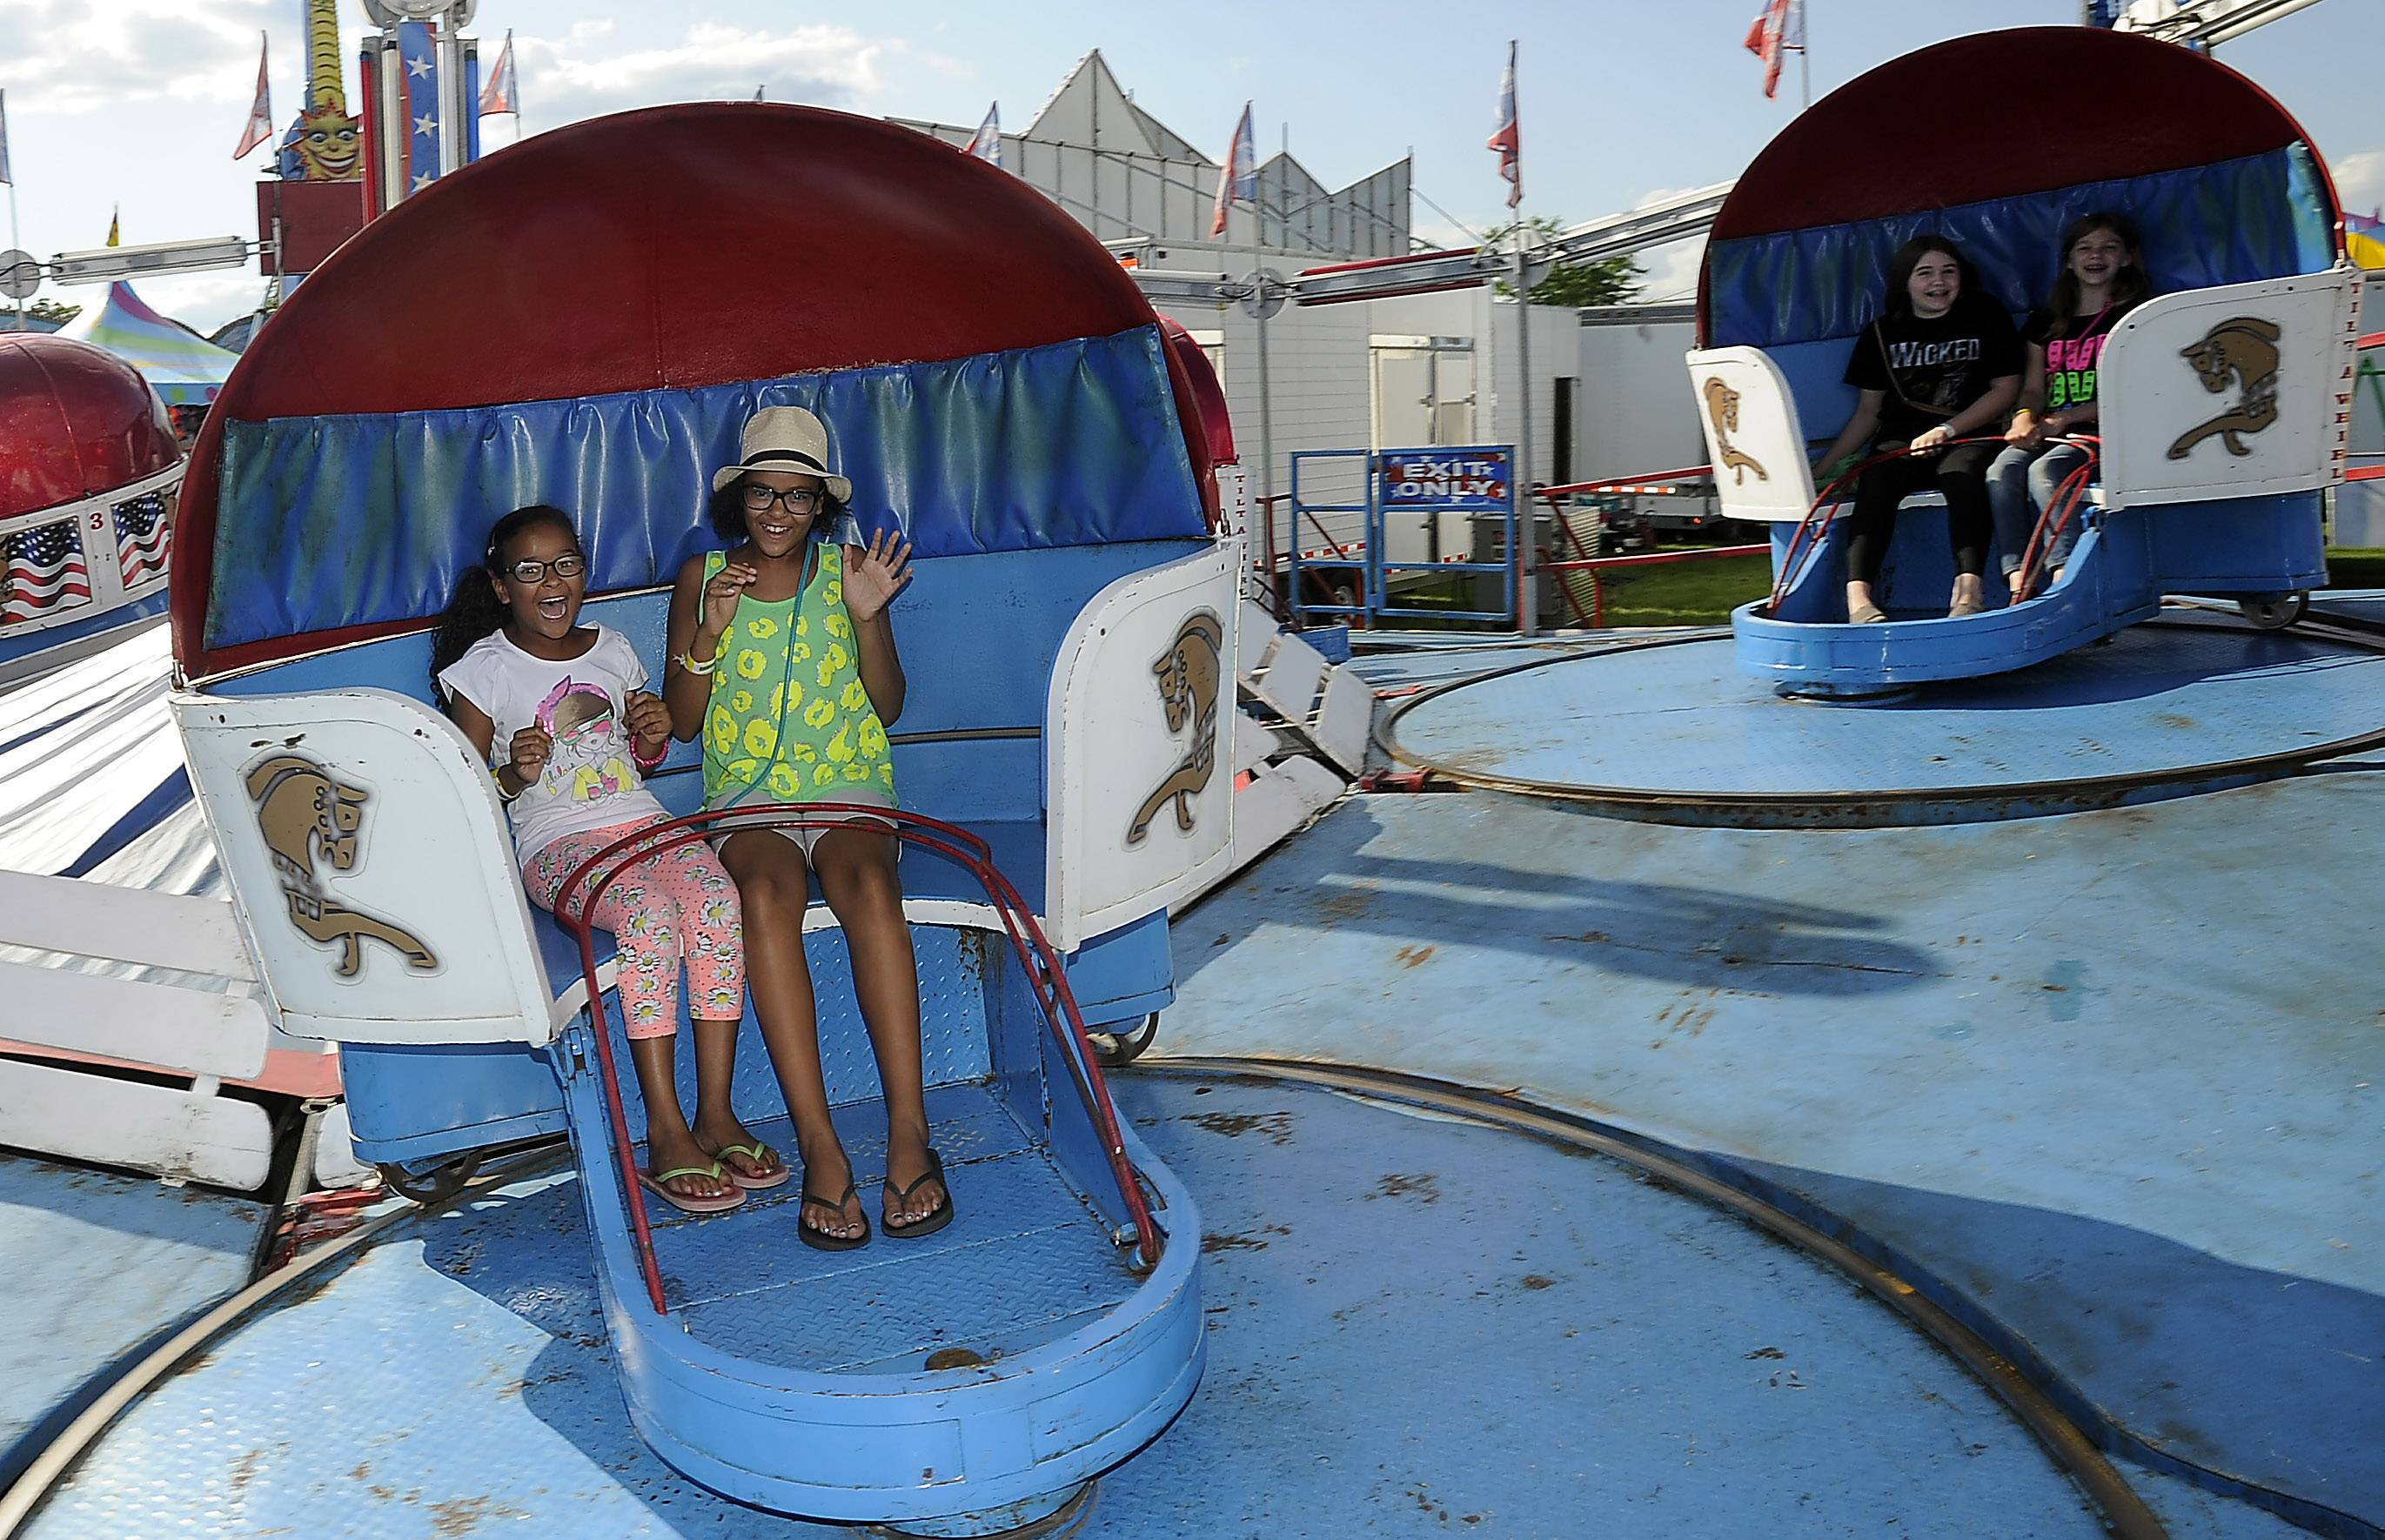 Monica Pedila, 8, of Bartlett and her sister Hania, 11, ride the Tilt A Whirl on Thursday at Bartlett's Fourth of July Festival.